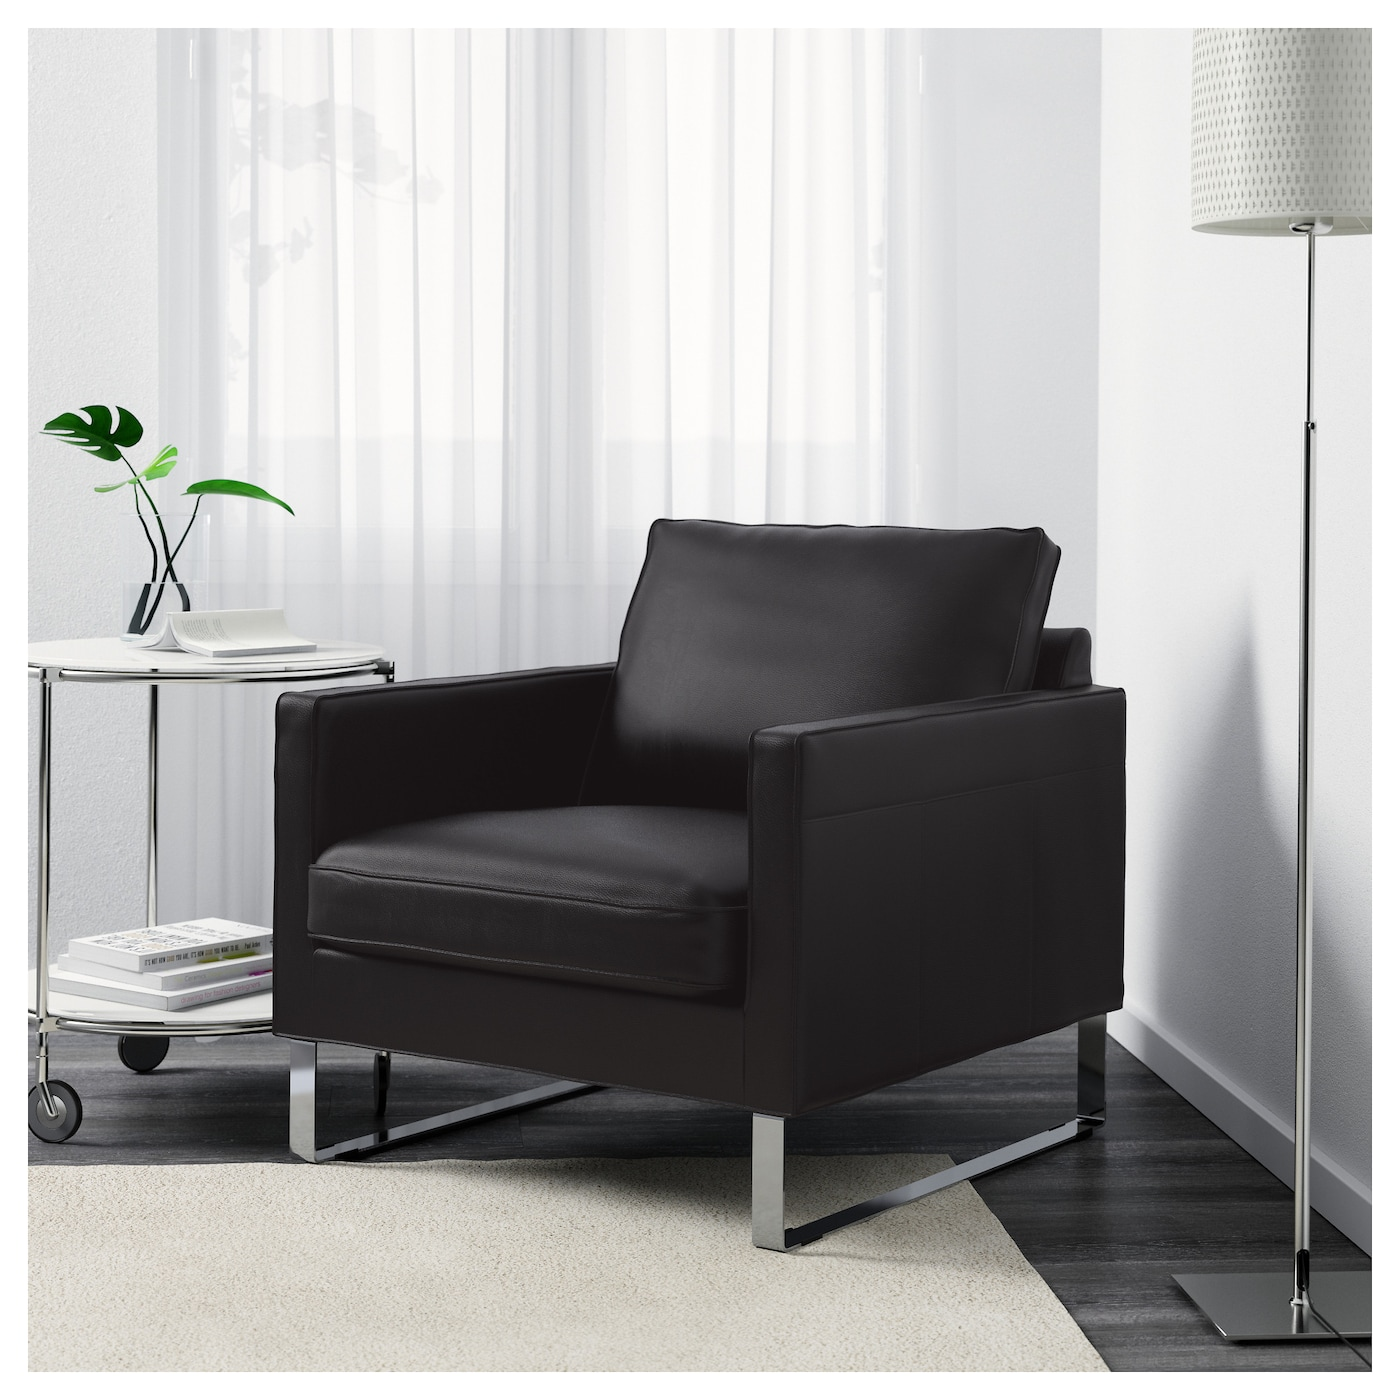 IKEA MELLBY armchair Soft, hardwearing and easy care leather, which ages gracefully.